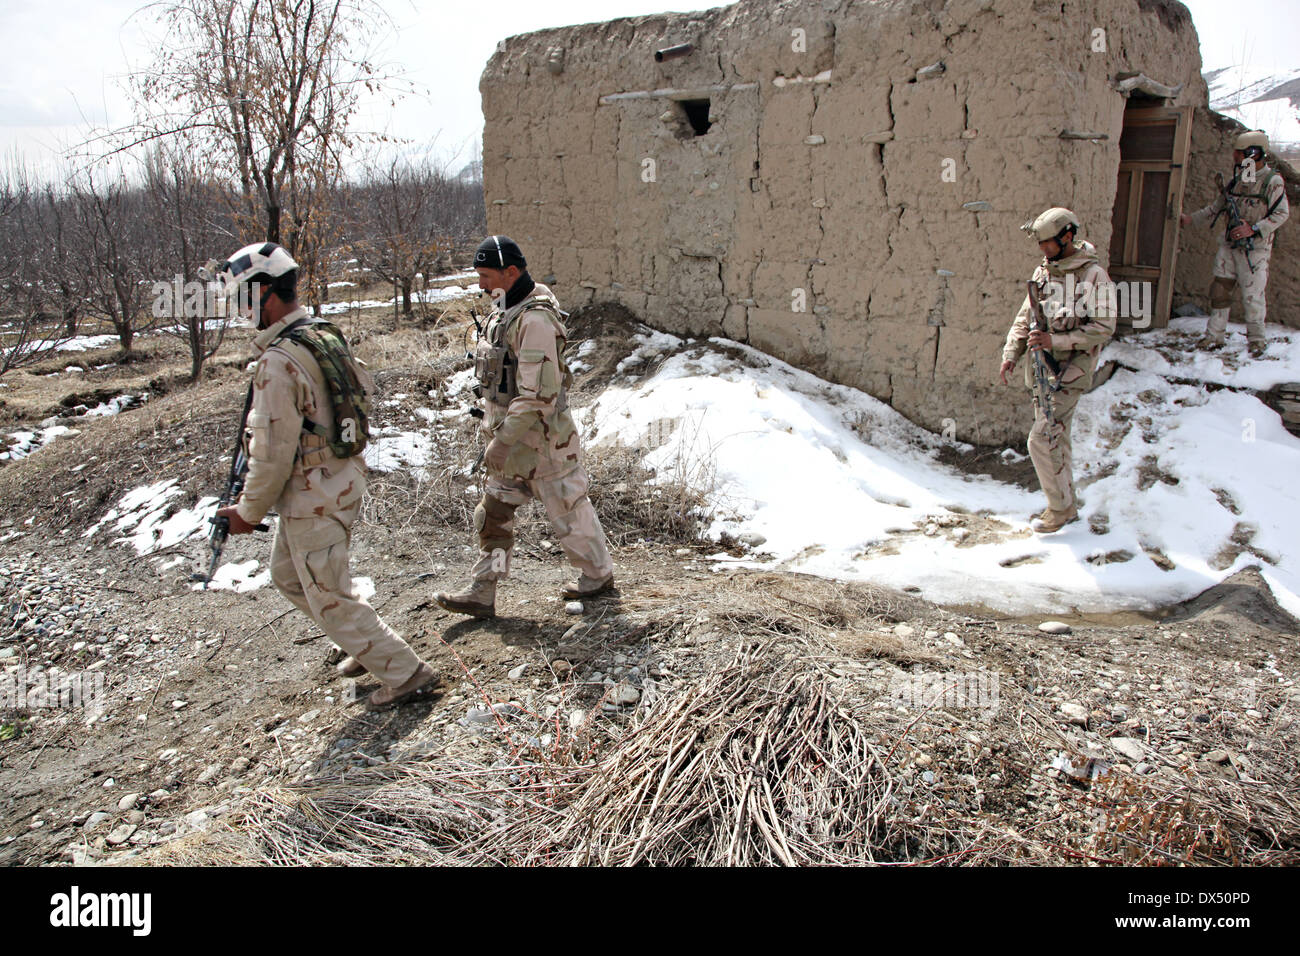 Afghan soldiers with Task Unit Wardak search a village during an armed reconnaissance operation March 6, 2014 in Zabodaq village, Wardak province, Afghanistan. - Stock Image